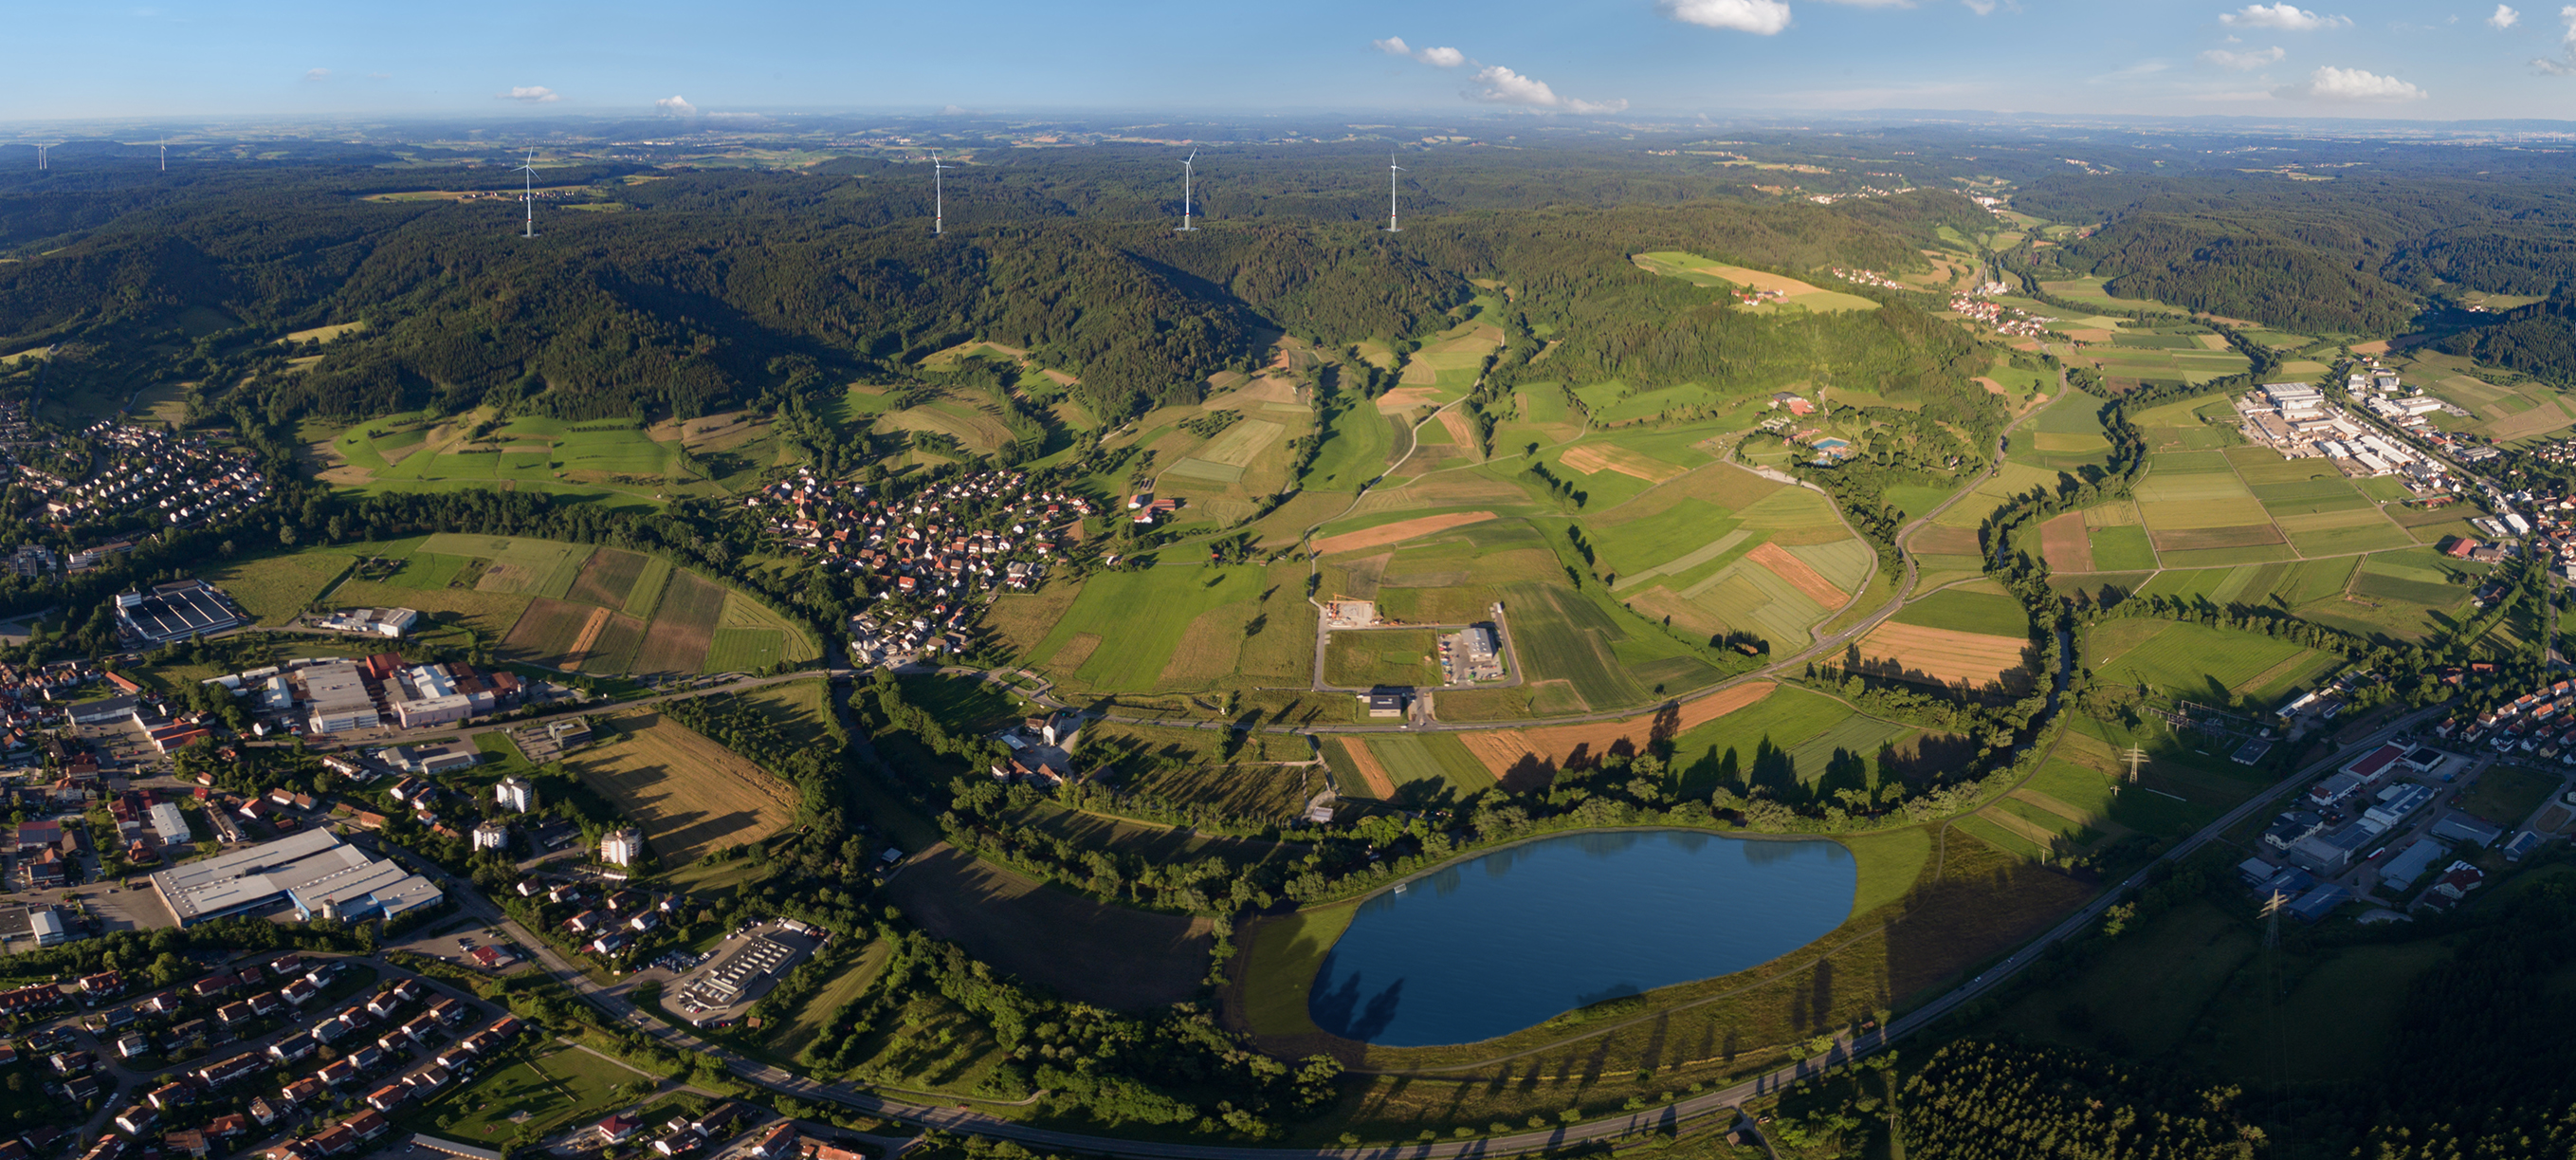 Aerial view of the Swabian-Franconian Forest in Germany, where the first wind farm with an integrated hydropower plant will be operational by the end of 2018. Photos - Copyright: Naturspeicher GmbH.